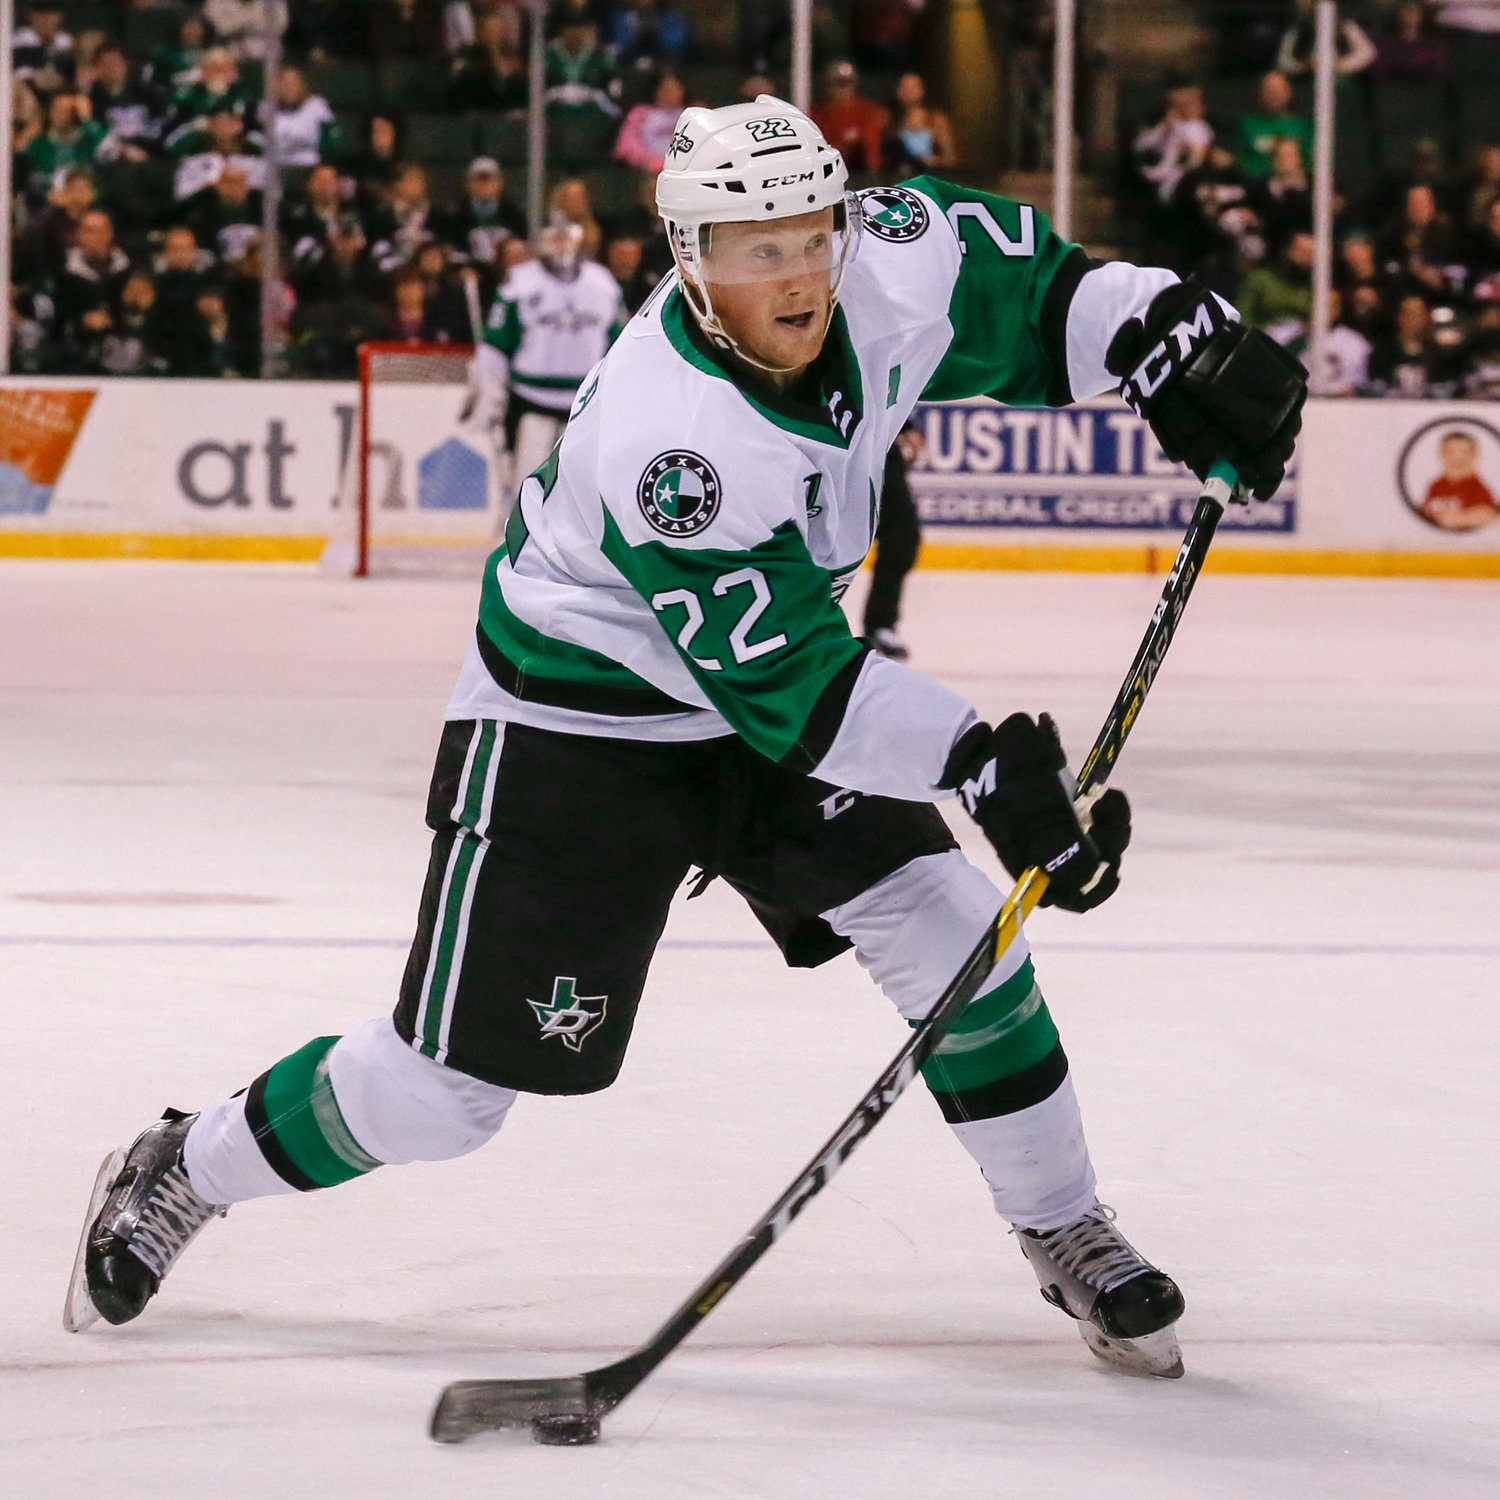 Erik Condra scored his first goal with the team and the Texas Stars swept the Iowa Wild in a two-game set last weekend.